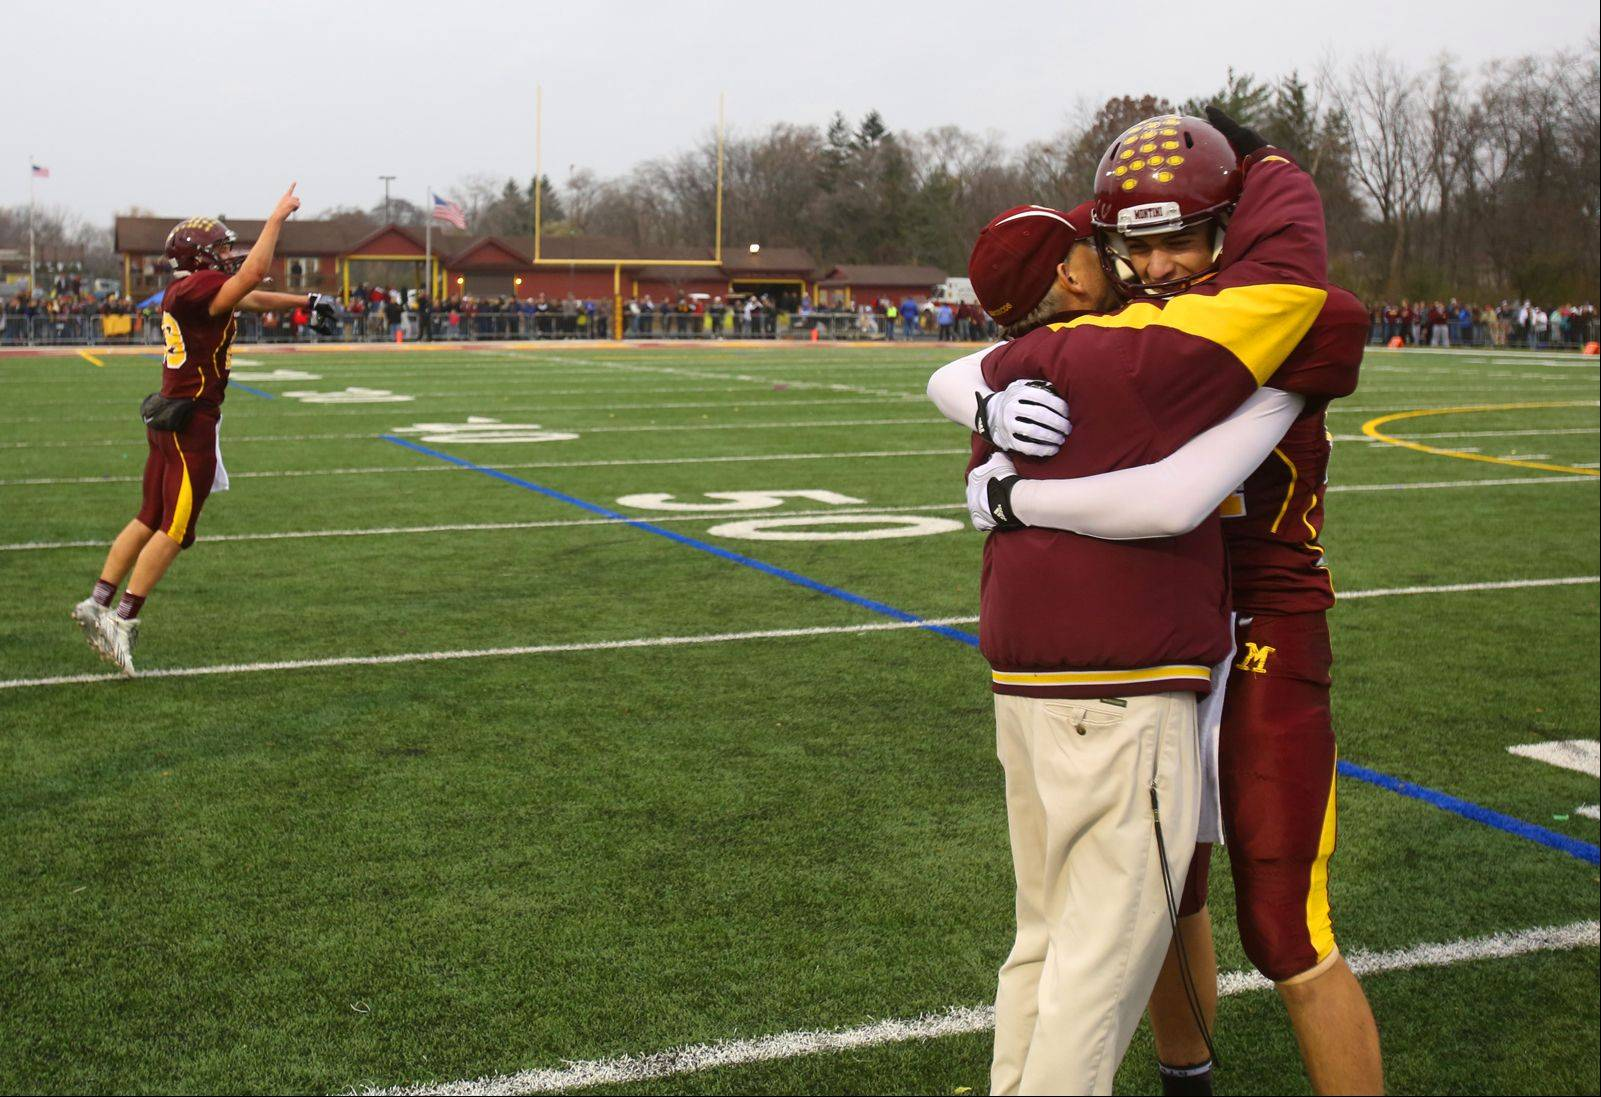 Montini Catholic's Stephen Dennis is congratulated by head coach Chris Andriano after Saturday's game.